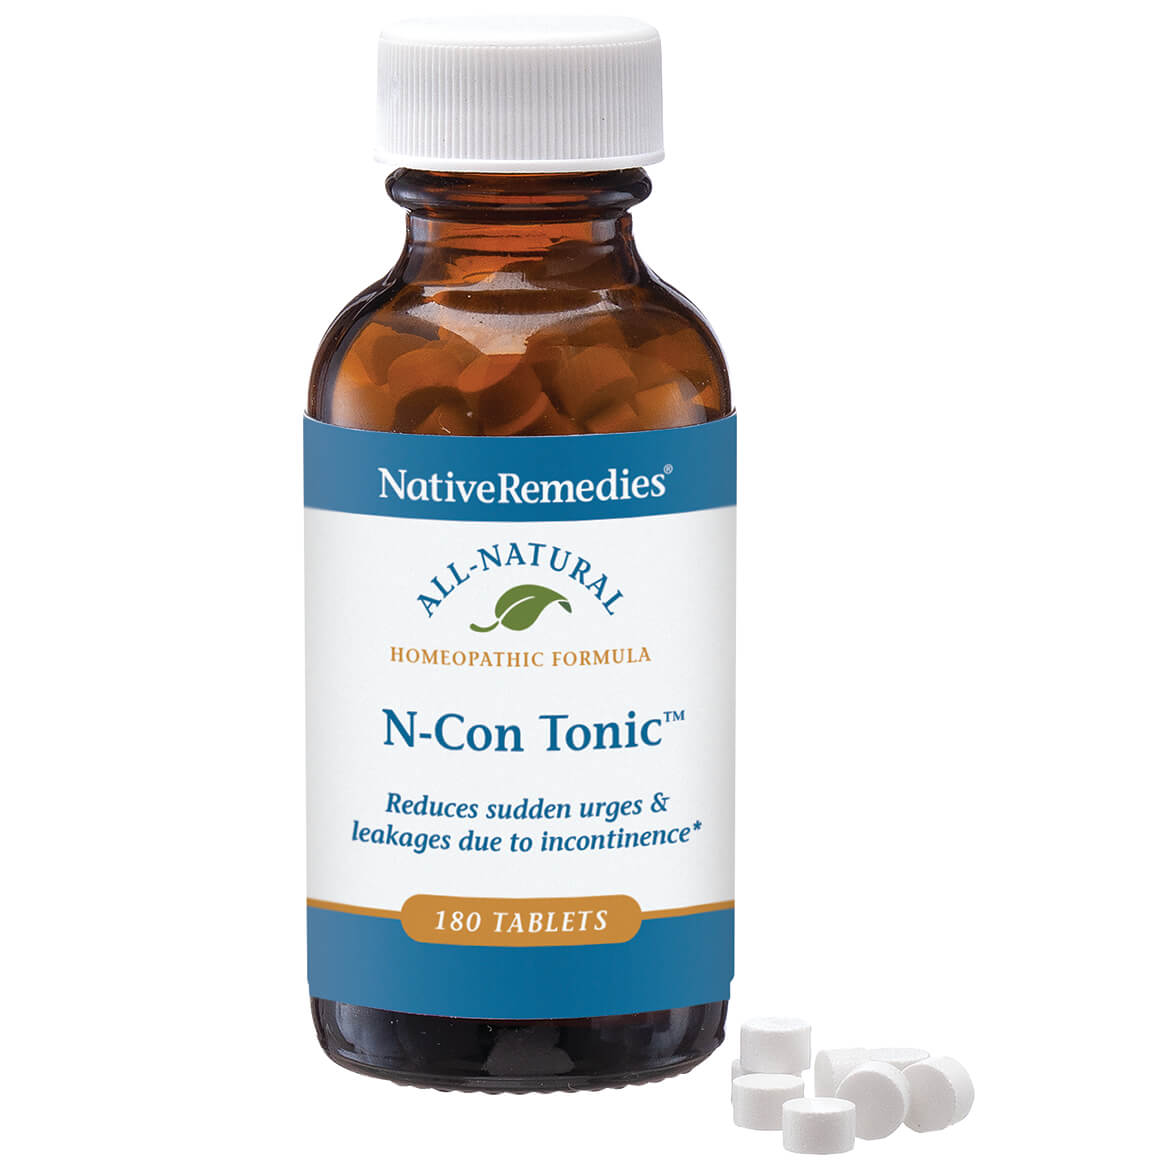 N-Con Tonic™ for Better Bladder Control-351041